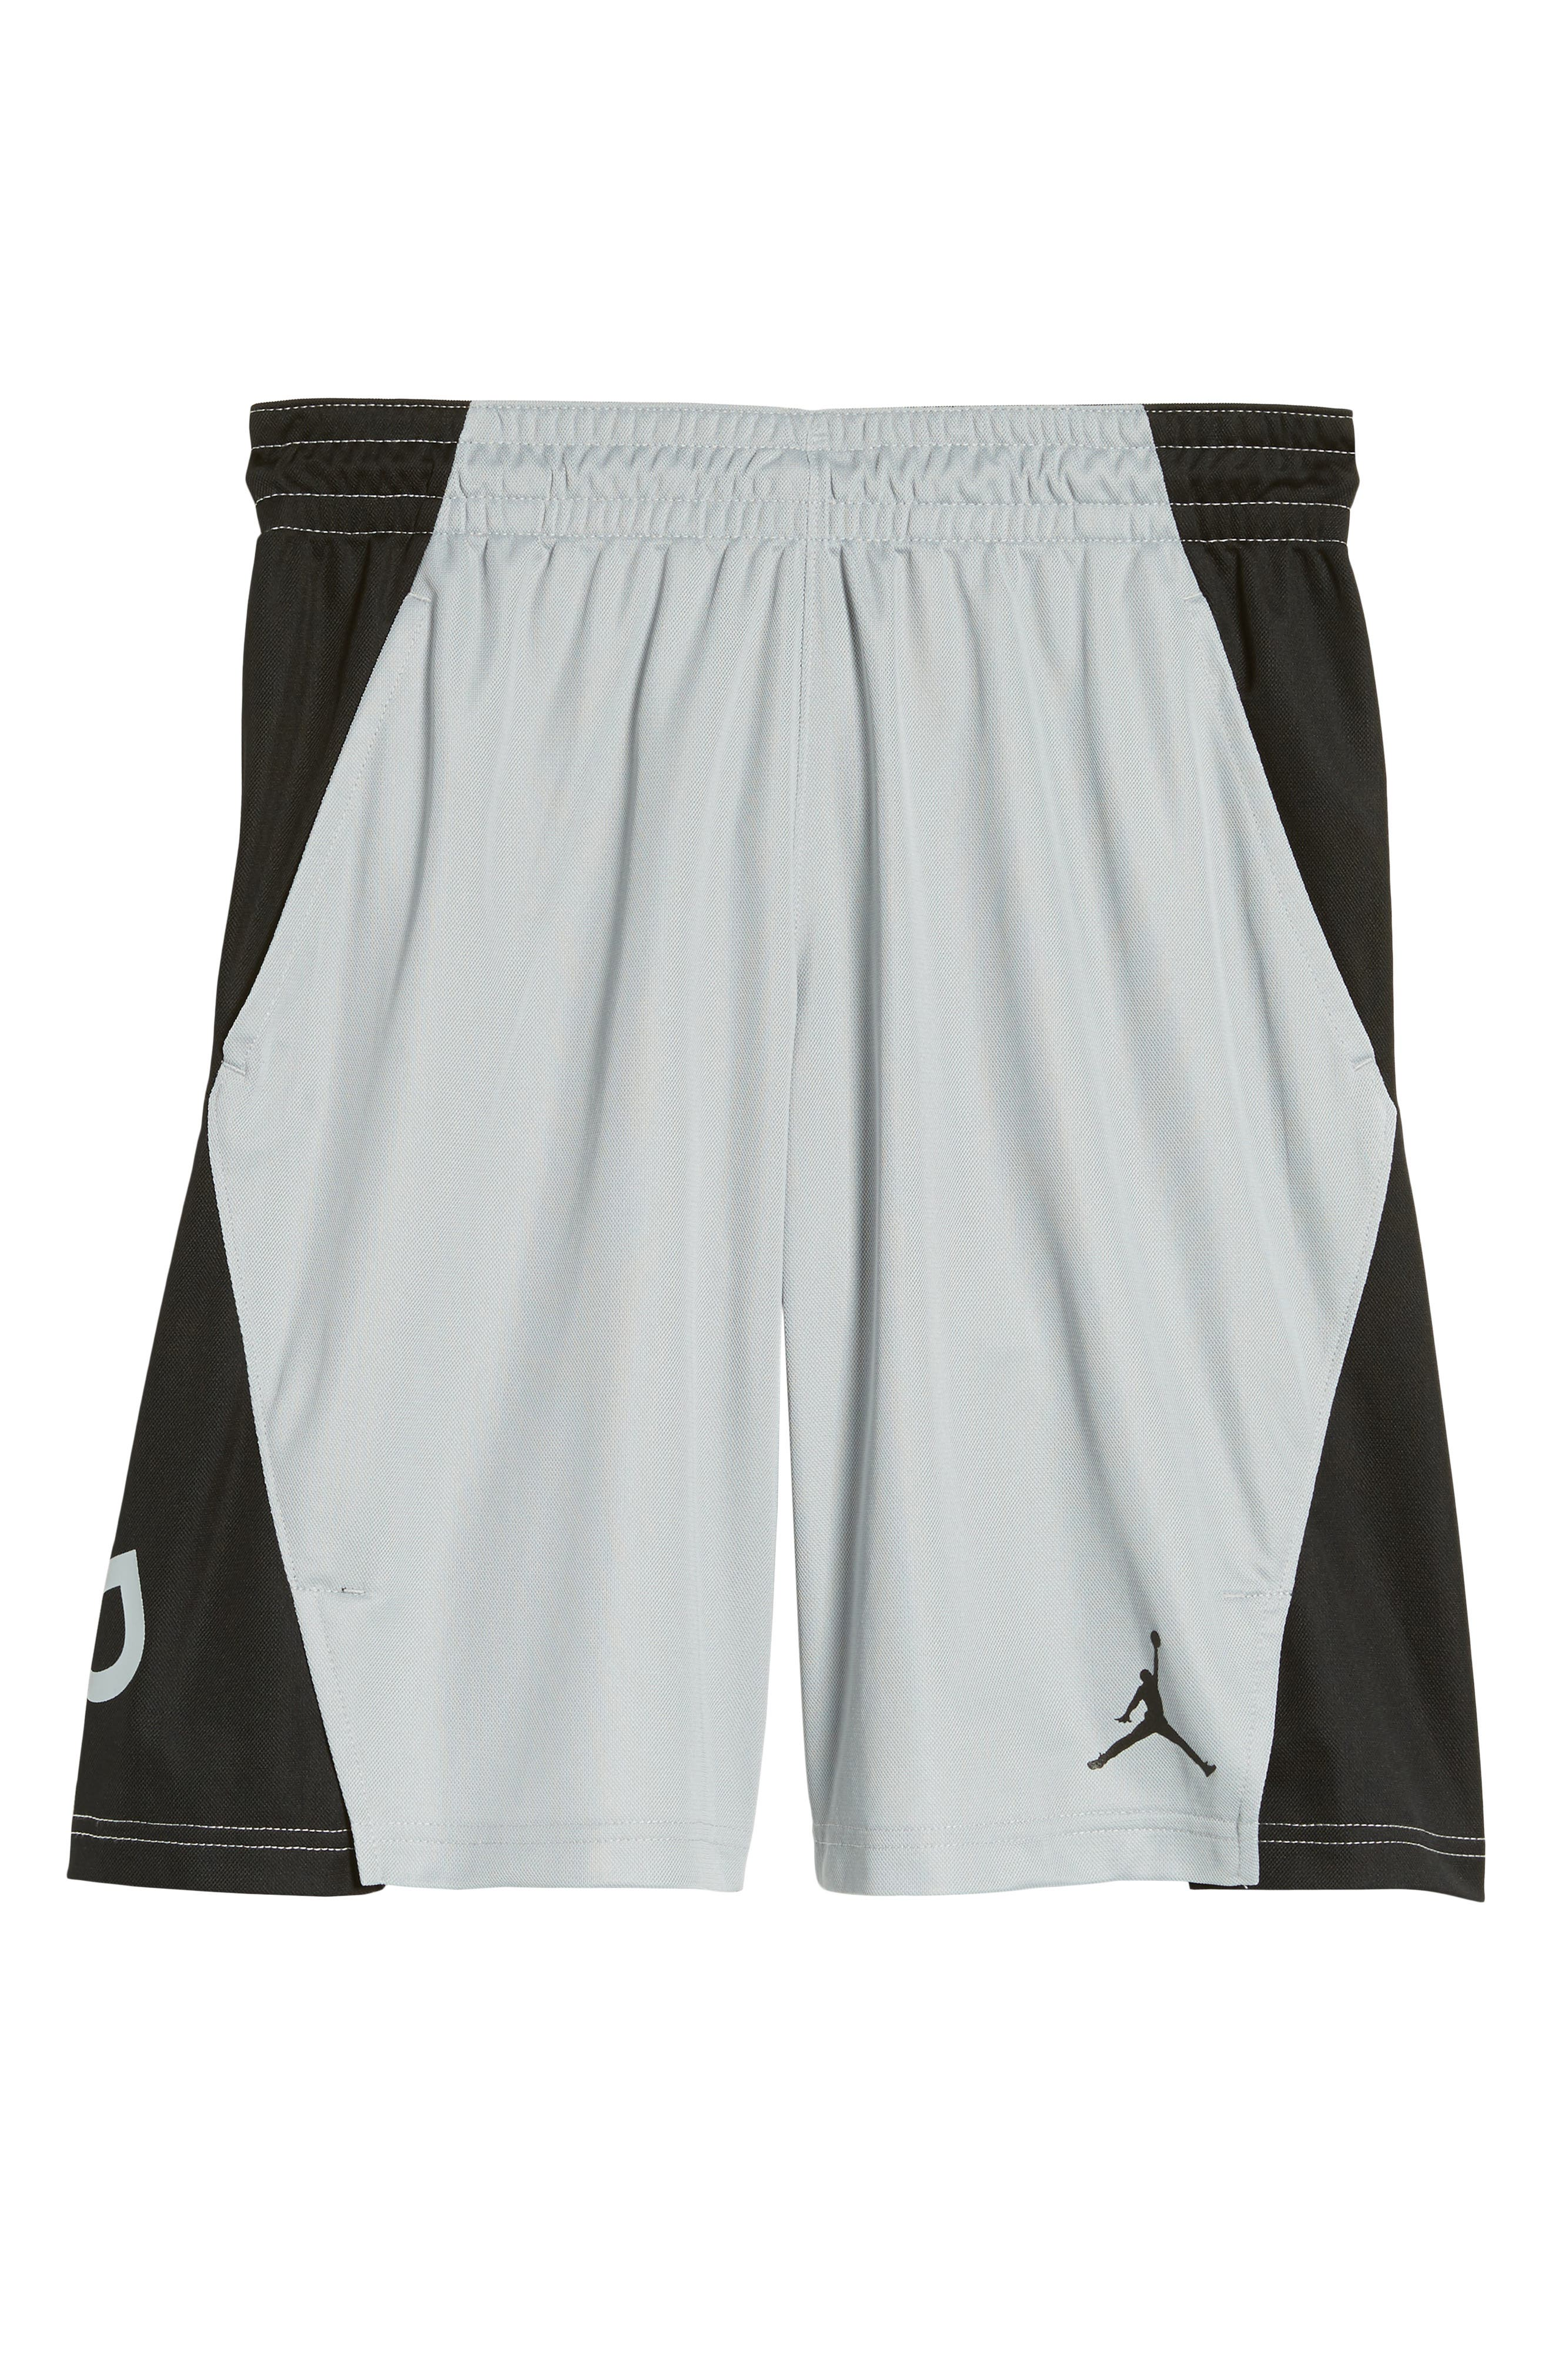 Flight Basketball Shorts,                             Main thumbnail 1, color,                             Wolf Grey/ Black/ Black